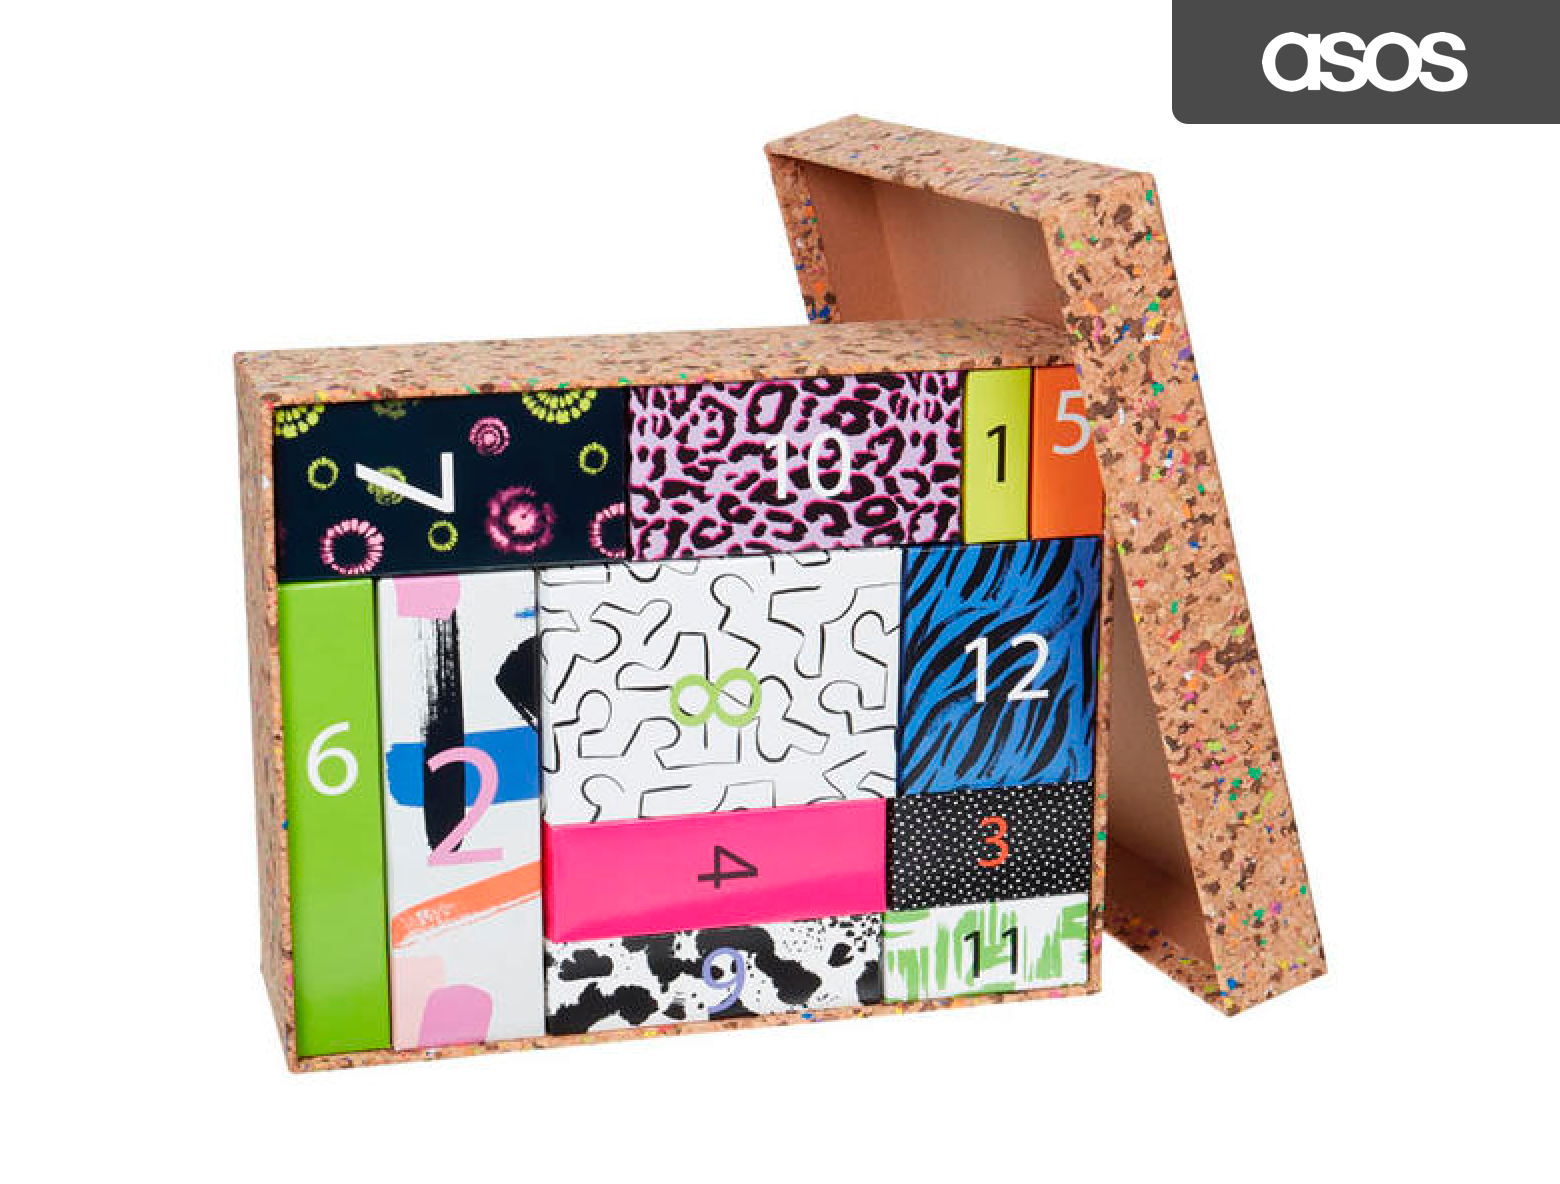 Advent Calendar Box | ASOS